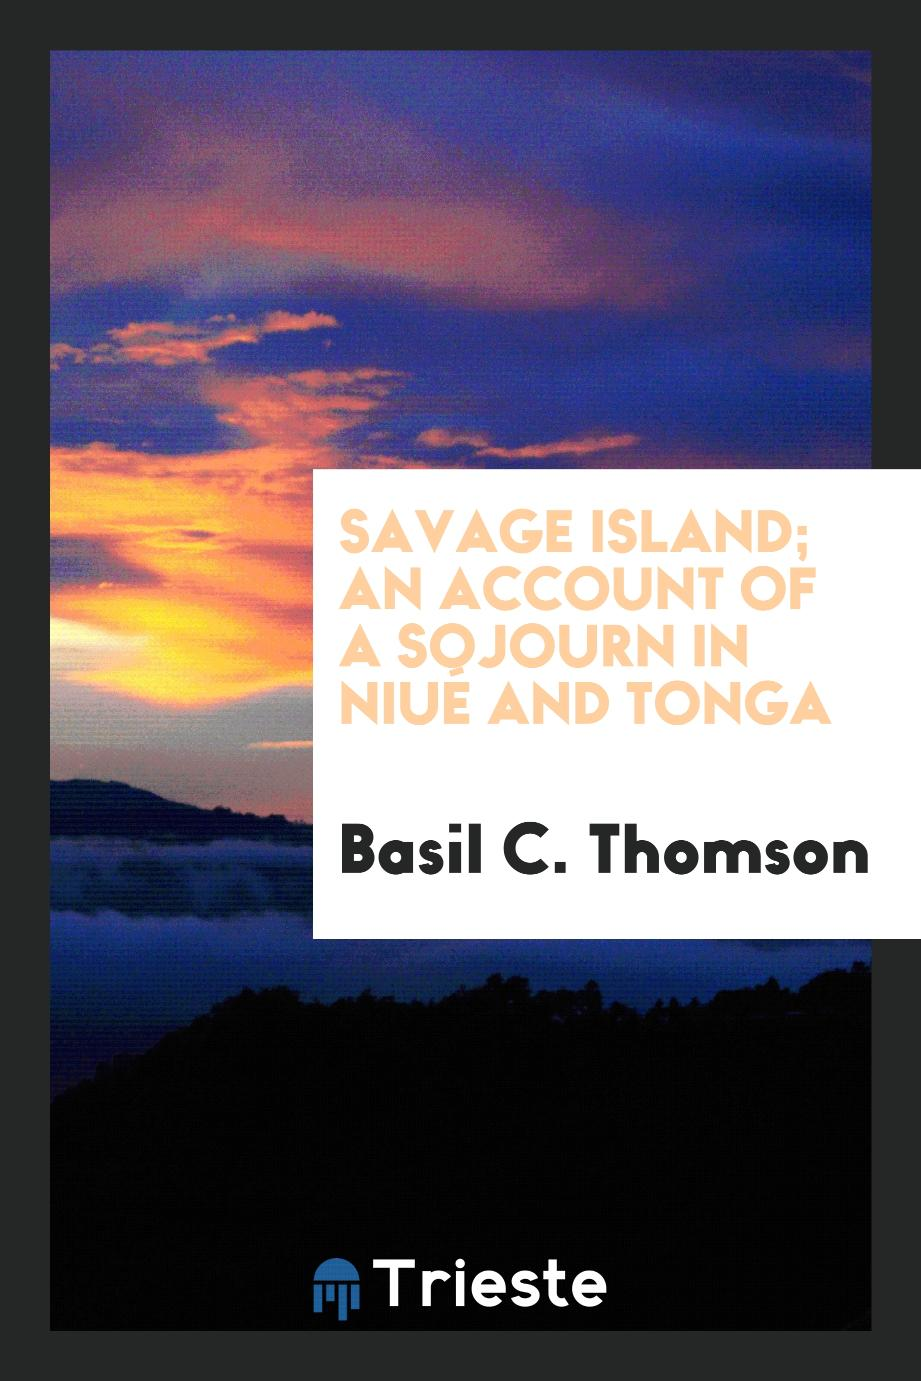 Savage Island; an account of a sojourn in Niué and Tonga